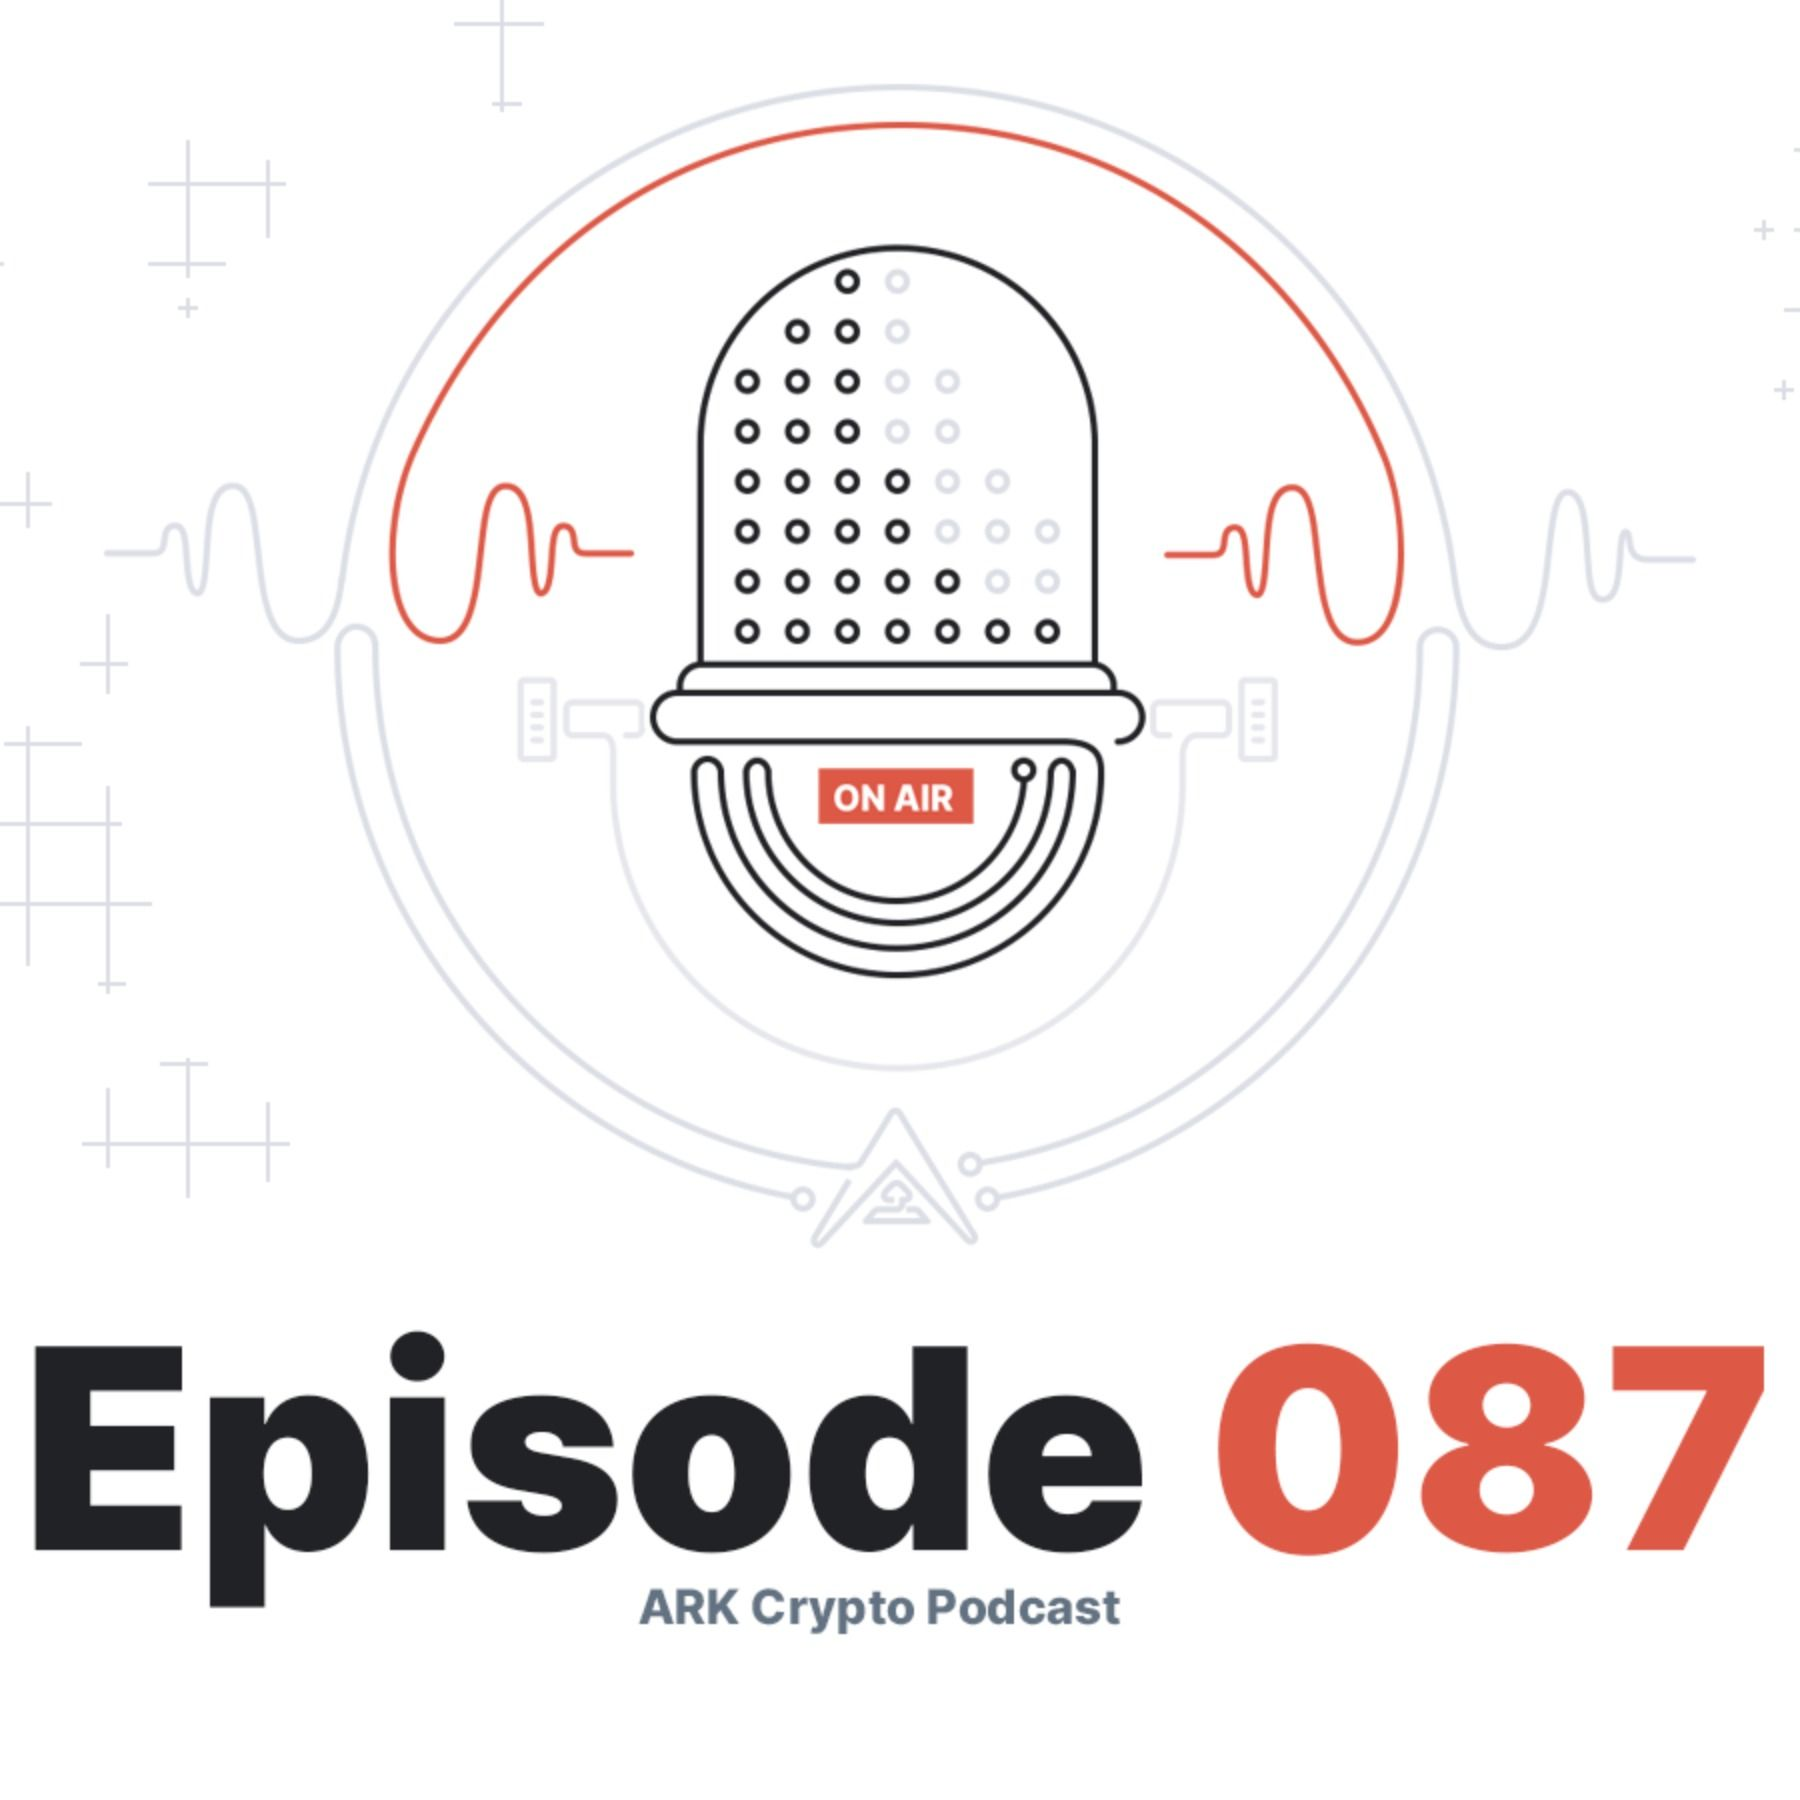 ARK Crypto Podcast #087 - ARK.io Monthly Update July 2020